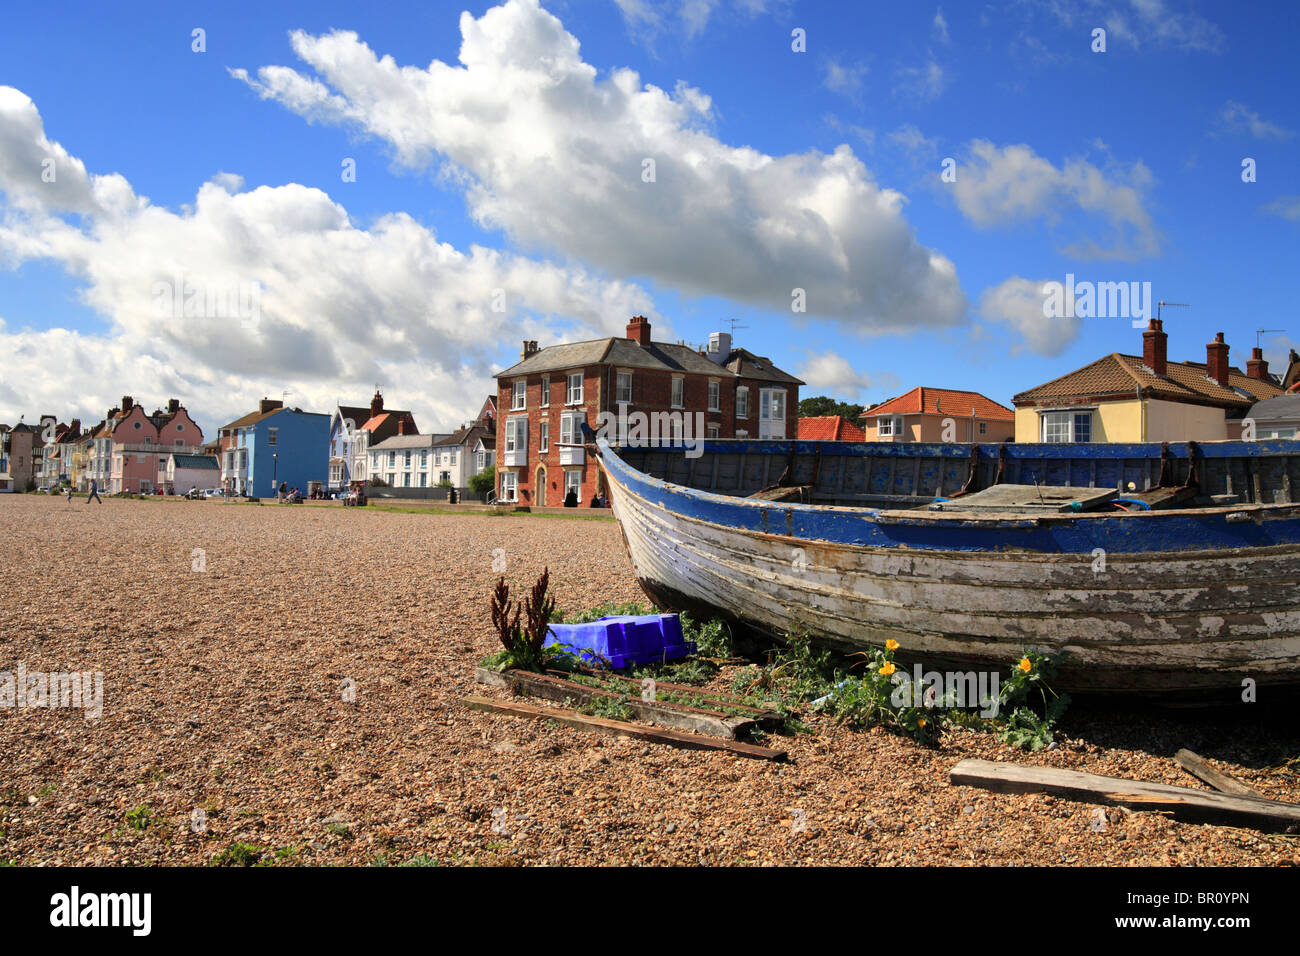 Fishing boat on Aldeburgh beach in front of the row of colourful town houses. Summers day in Suffolk East Anglia. - Stock Image